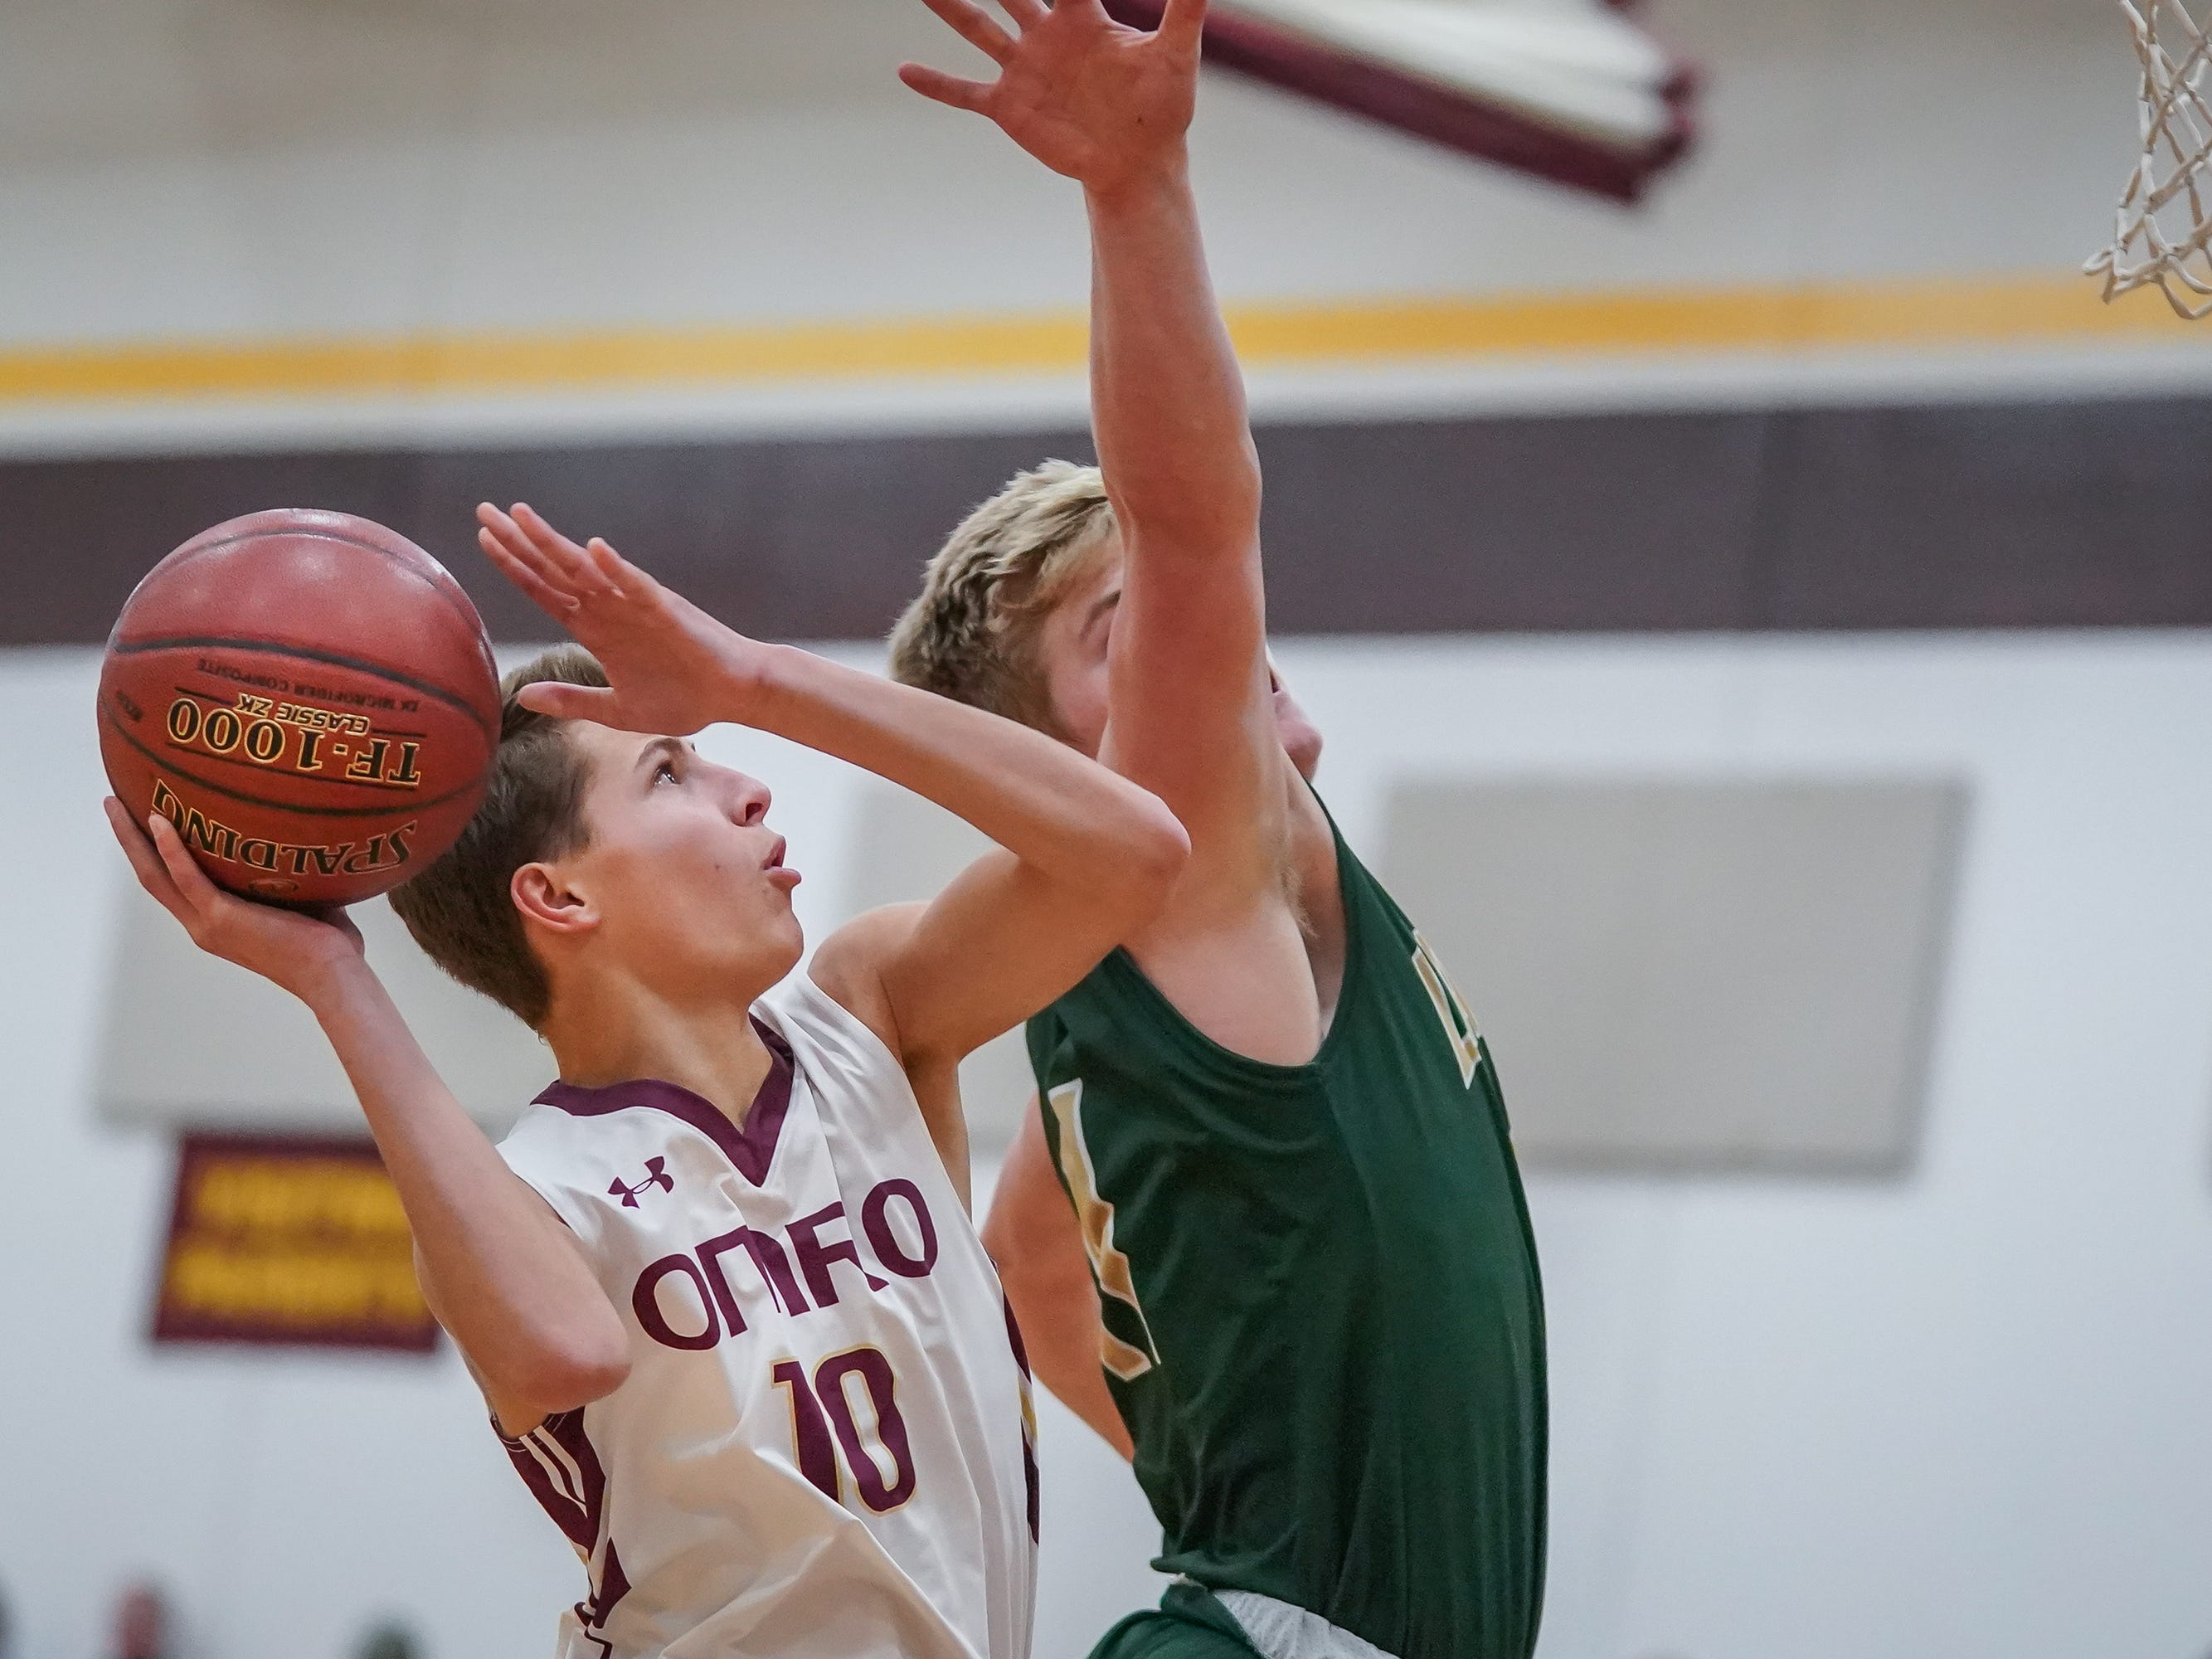 Cade Stachura (10) of Omro goes up for a shot. The Omro Foxes hosted the Laconia Spartans in a Flyway Conference basketball game Friday evening, January 11, 2019.